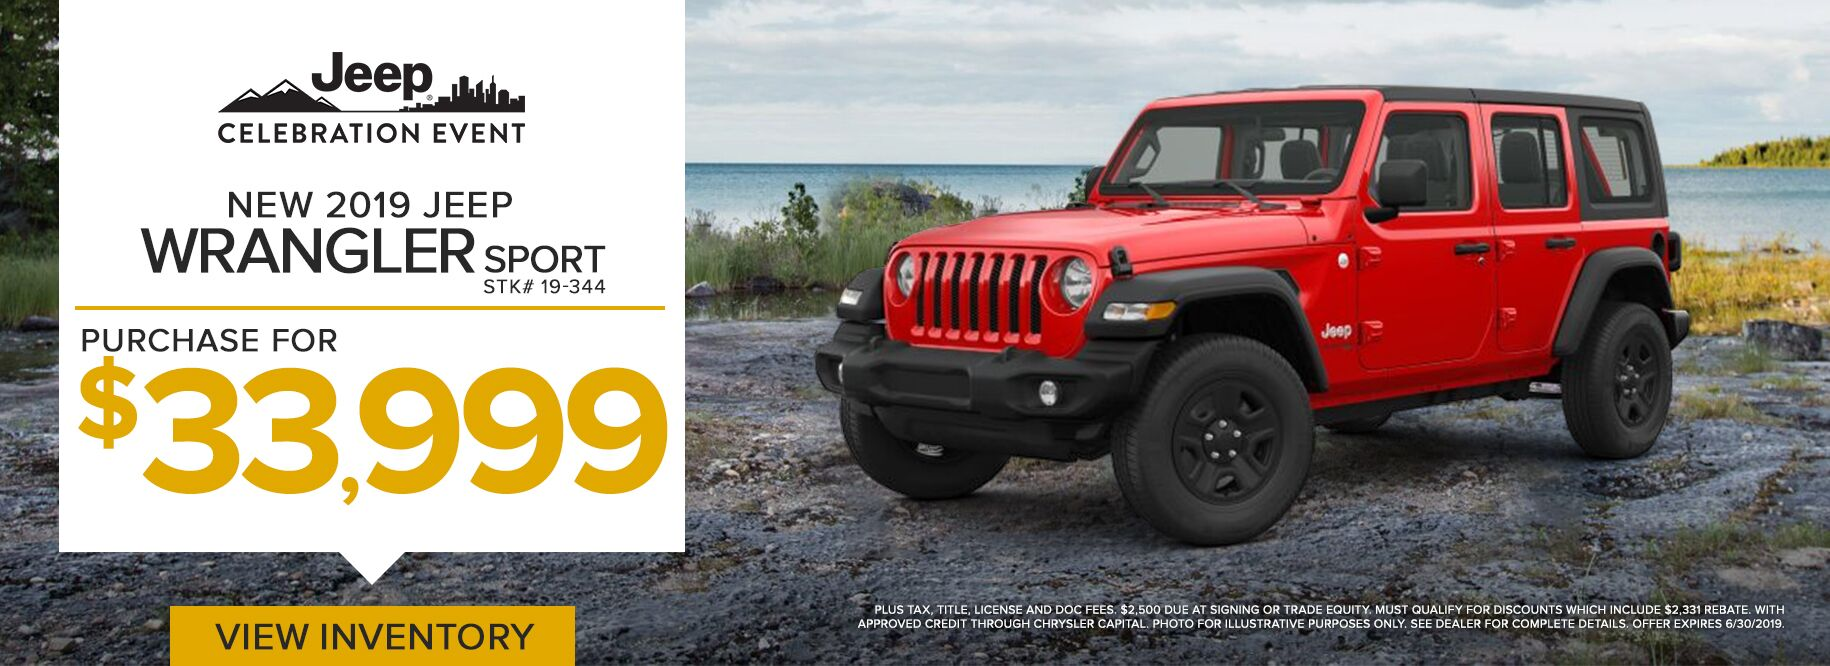 June Wrangler Offer